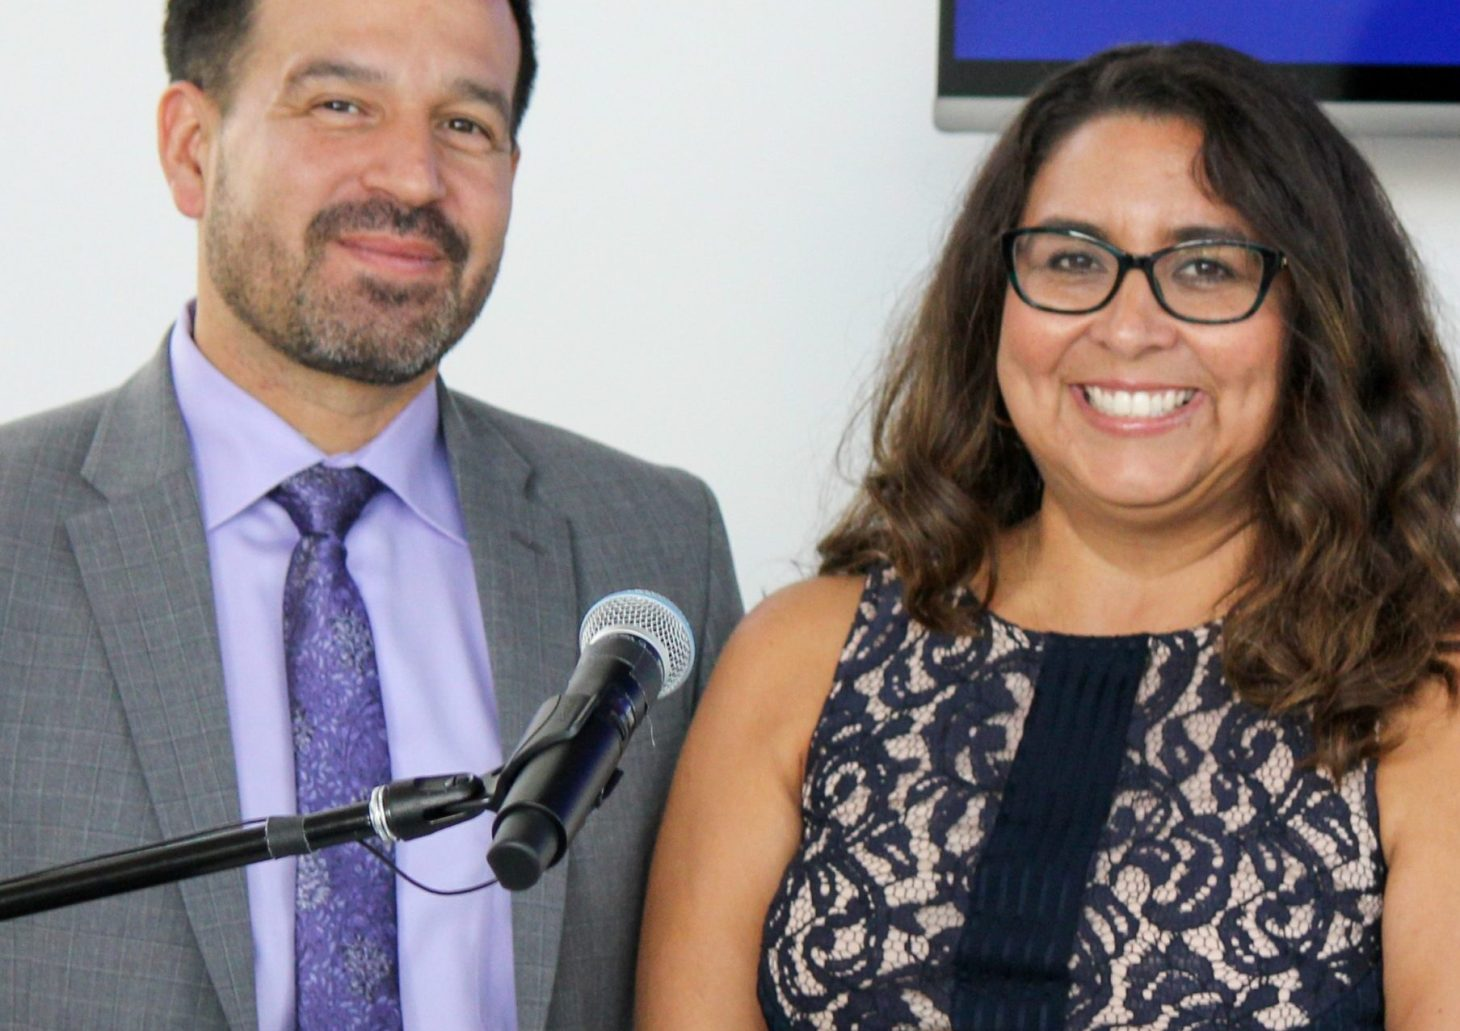 Dr. Jose Fierro and Marisa Perez